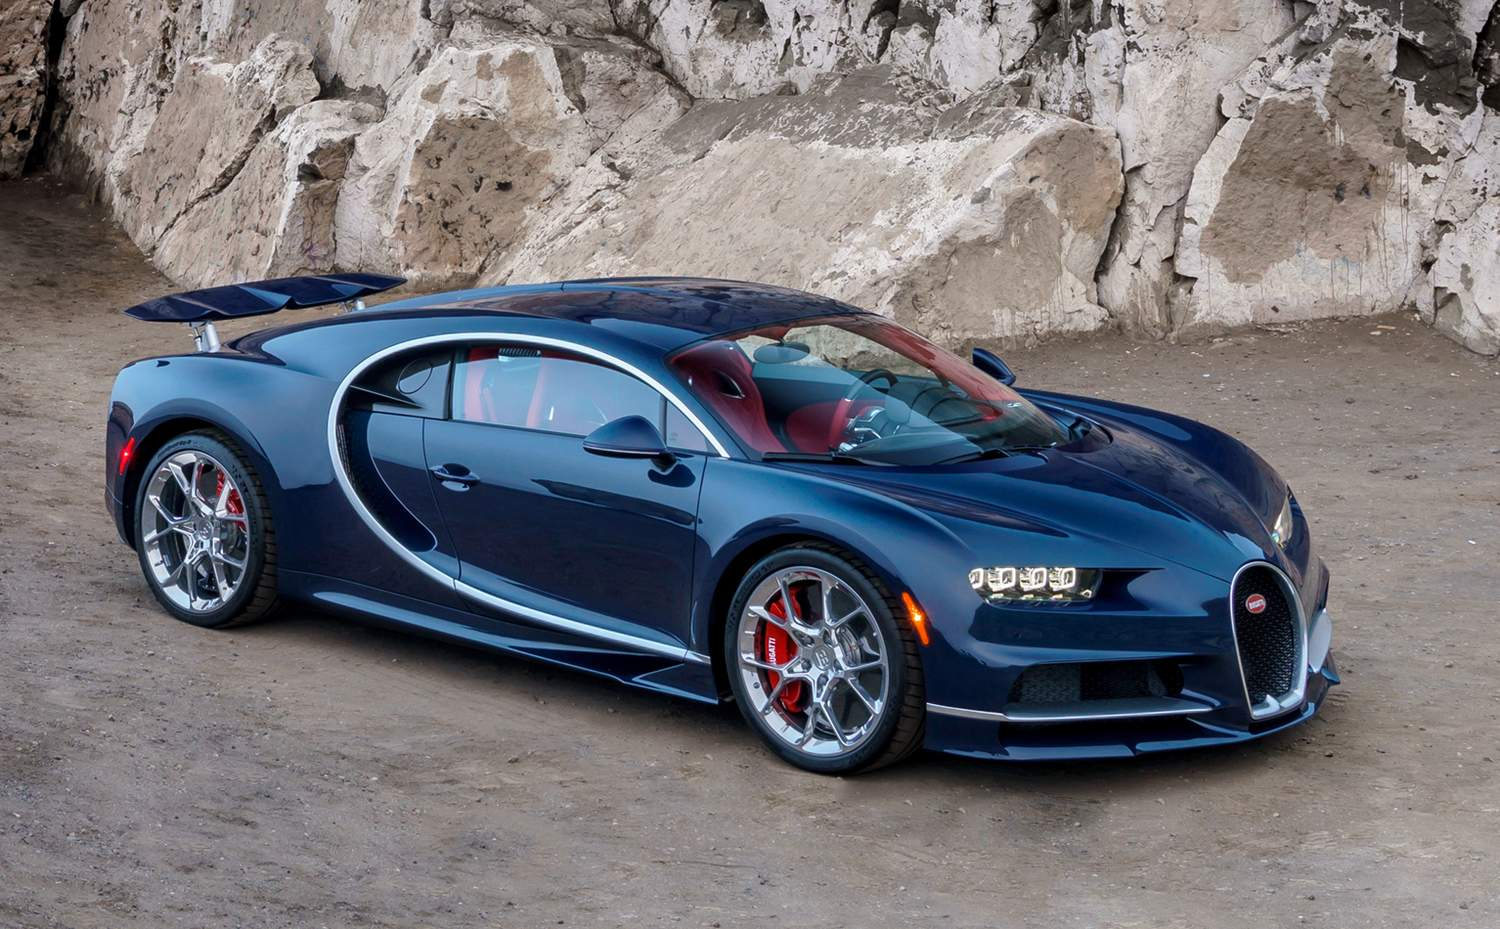 bugatti chiron em lan amento oficial nos eua calif rnia car blog br. Black Bedroom Furniture Sets. Home Design Ideas